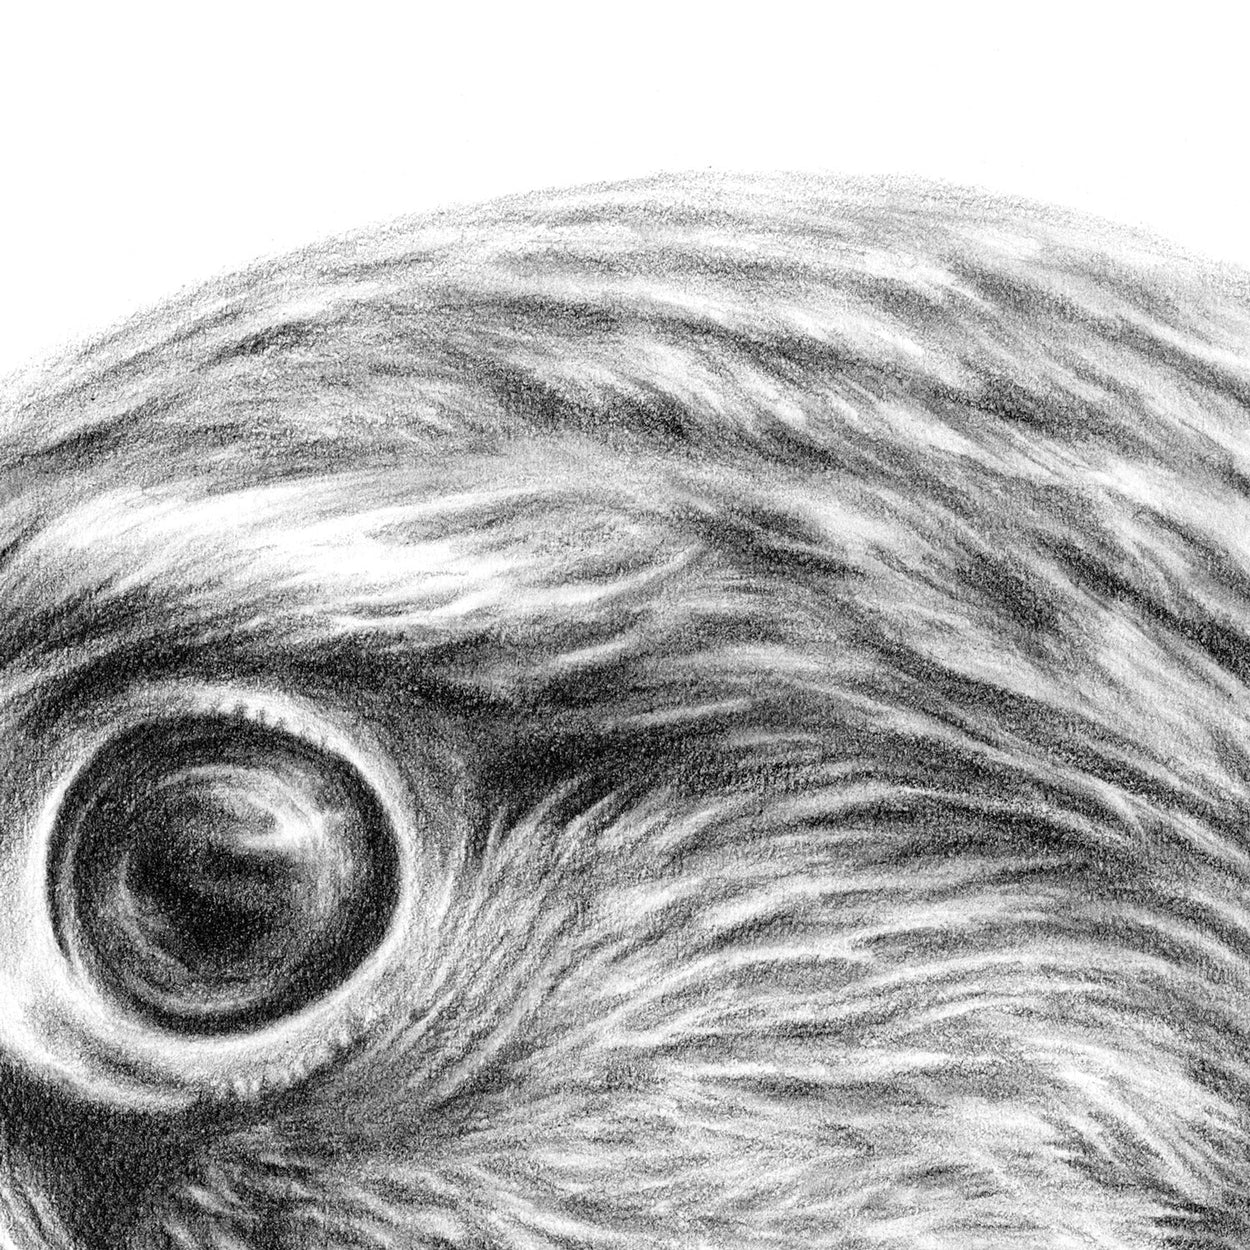 Kestrel Close-up Drawing 2 - The Thriving Wild